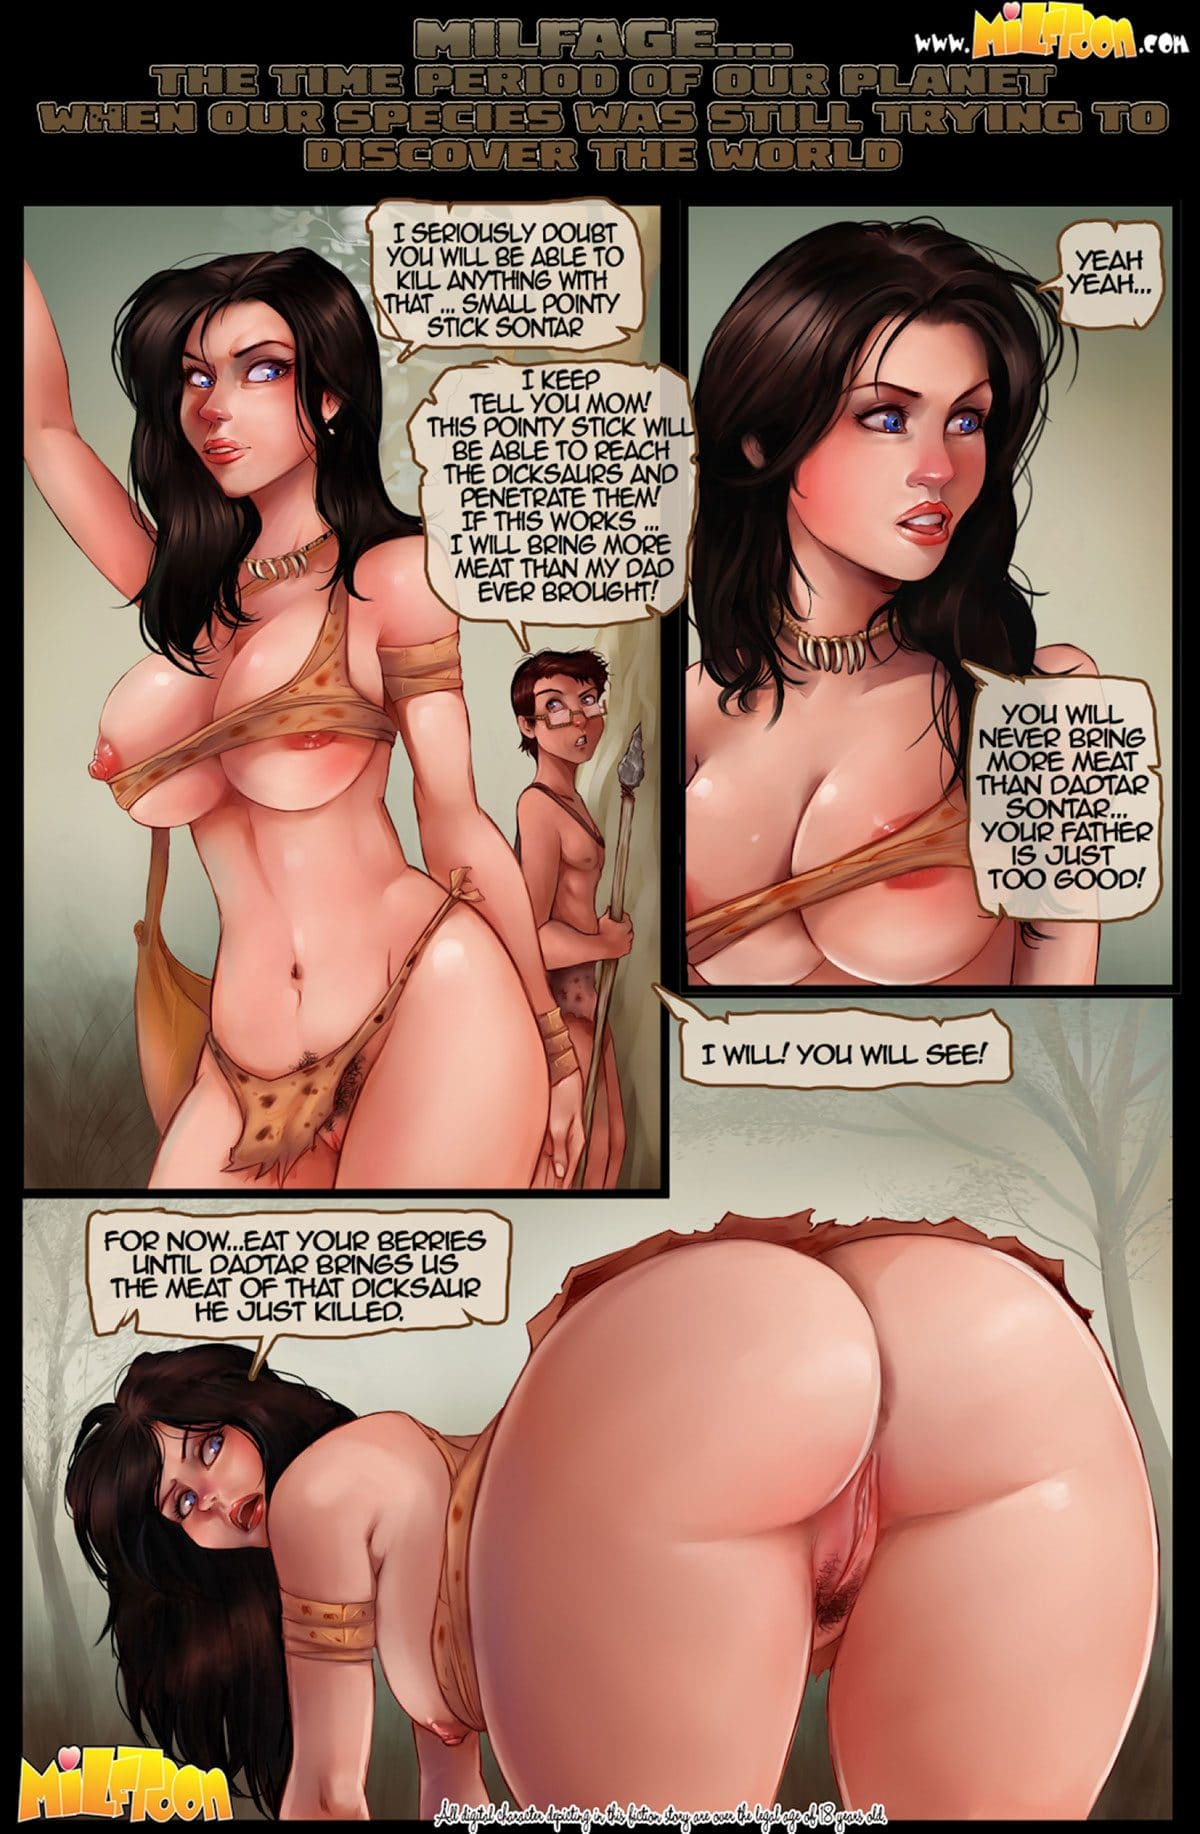 """Milftoon comic """"MilfAge"""" - page 1"""